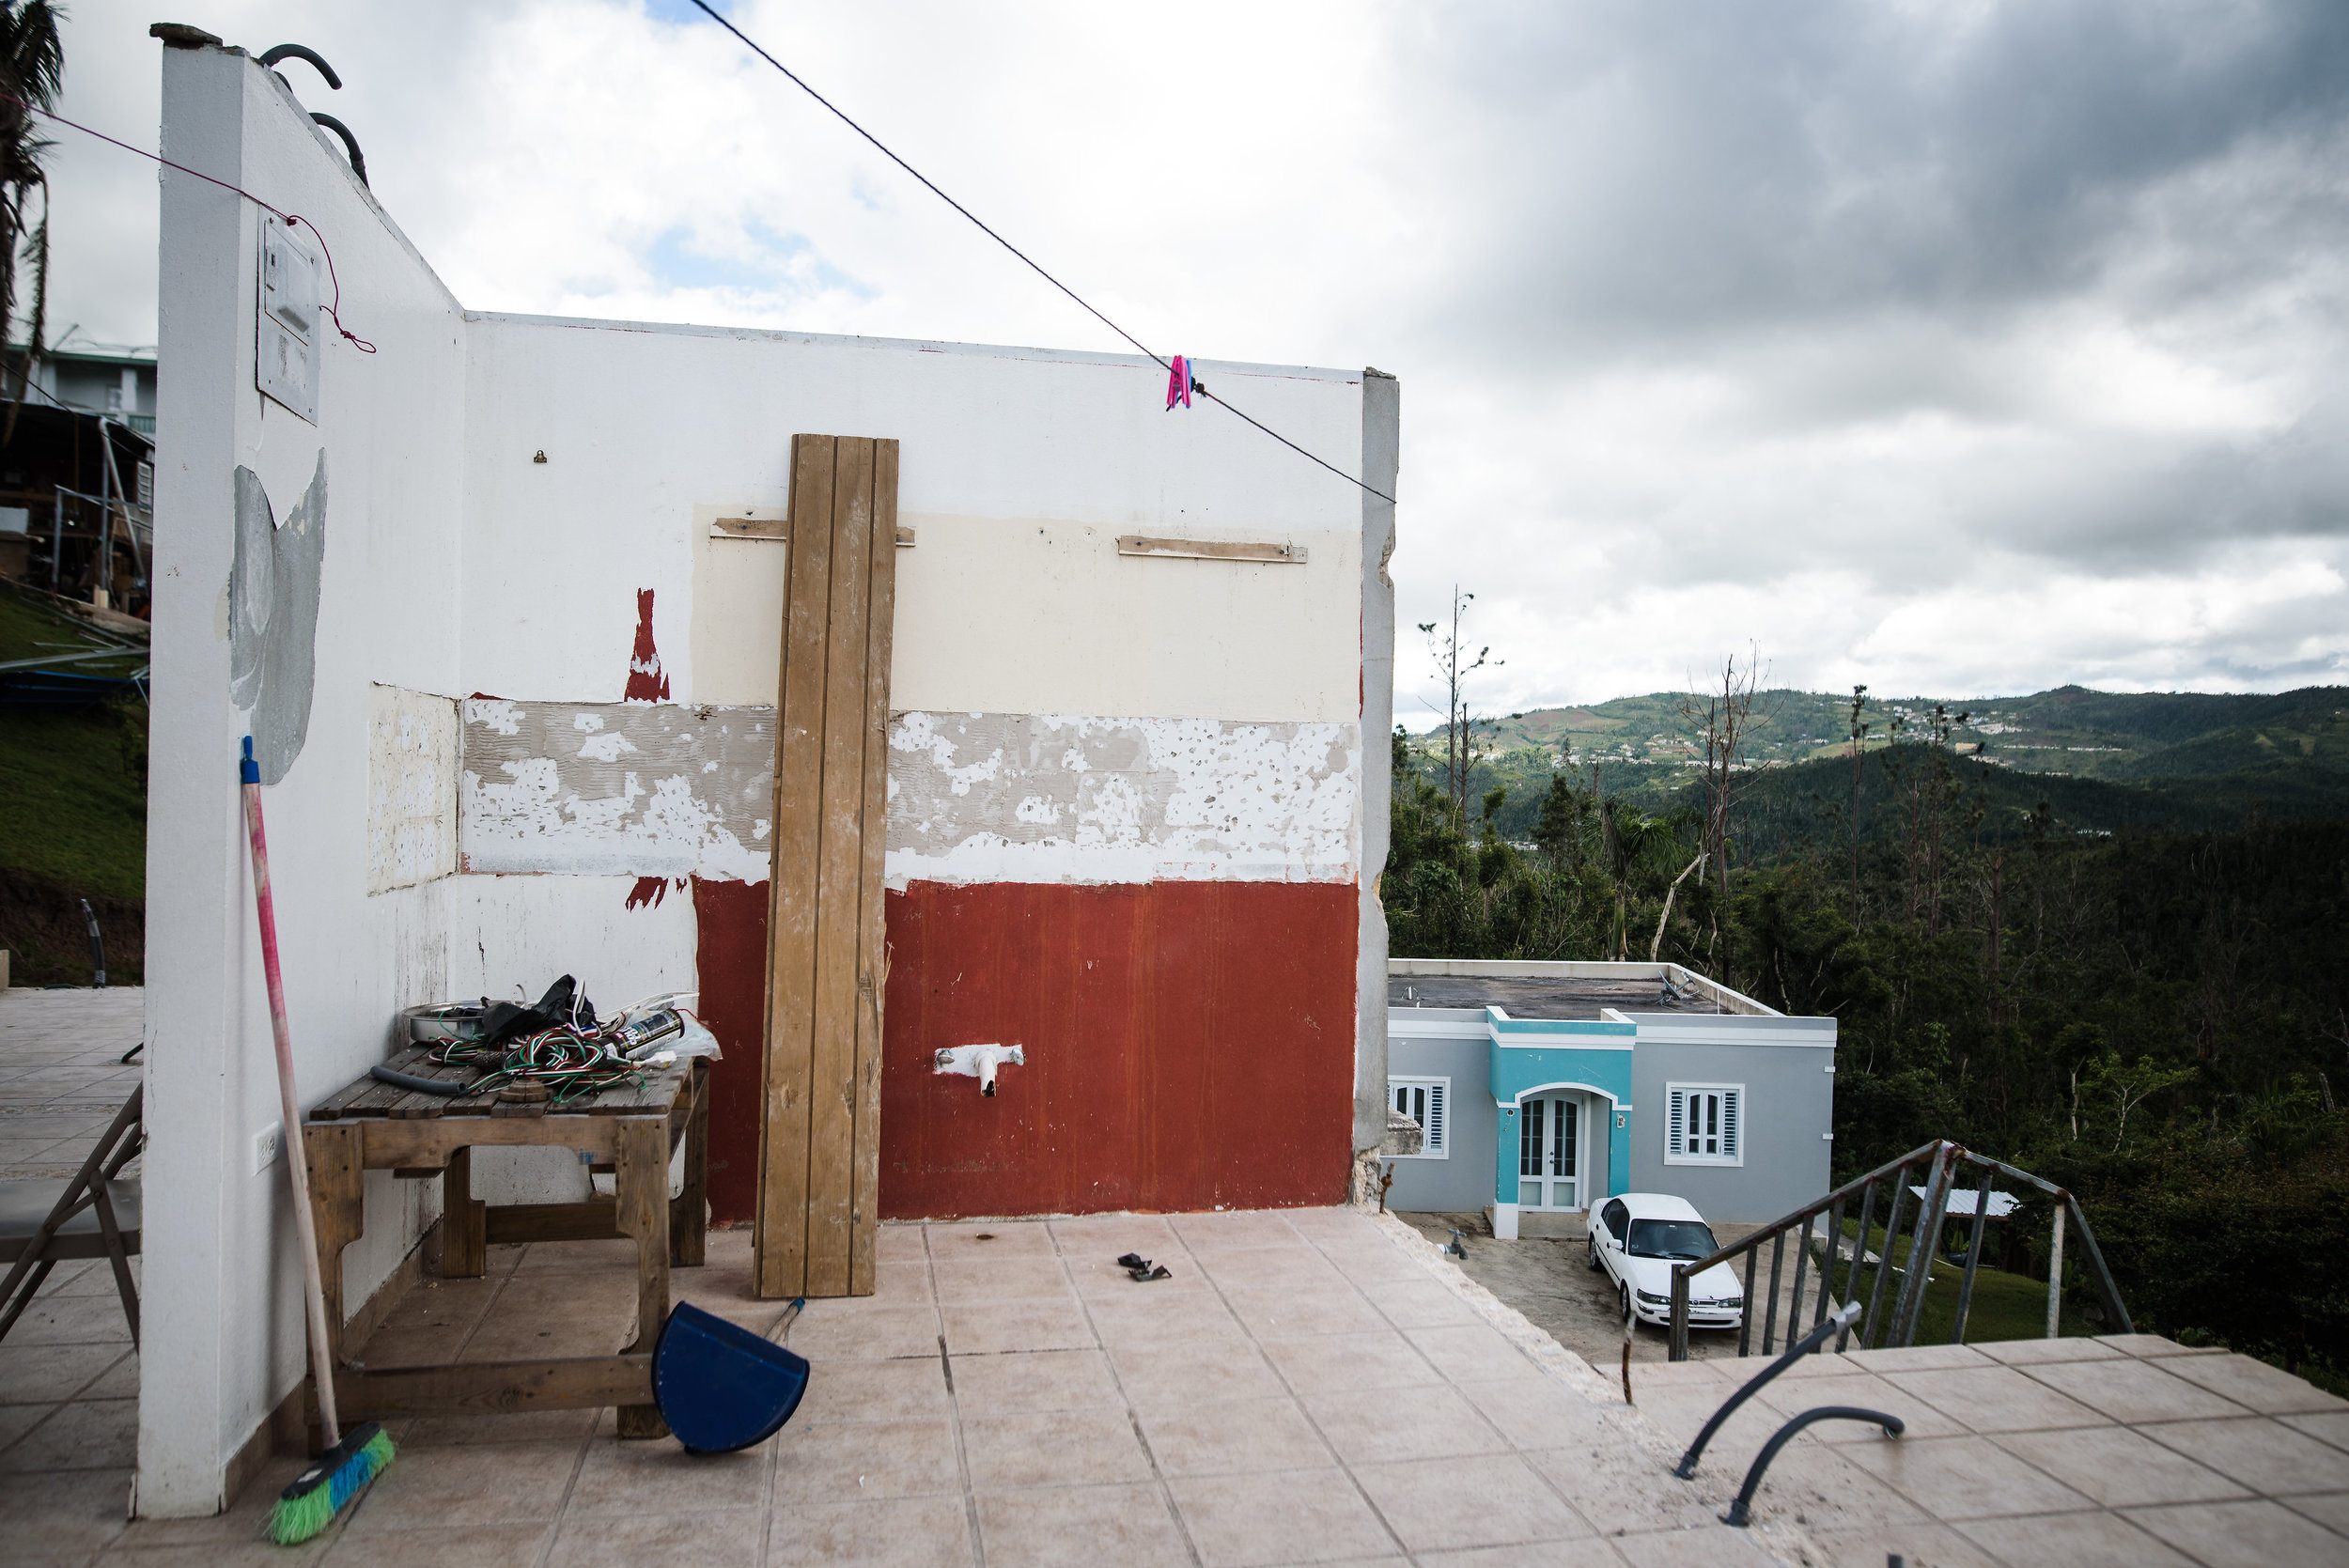 Photo credit: Aniya Emtage Legnaro  What remained of Juan and Denisse's home after hurricane Maria hit on September 20th 2017. Orocovis, Puerto Rico